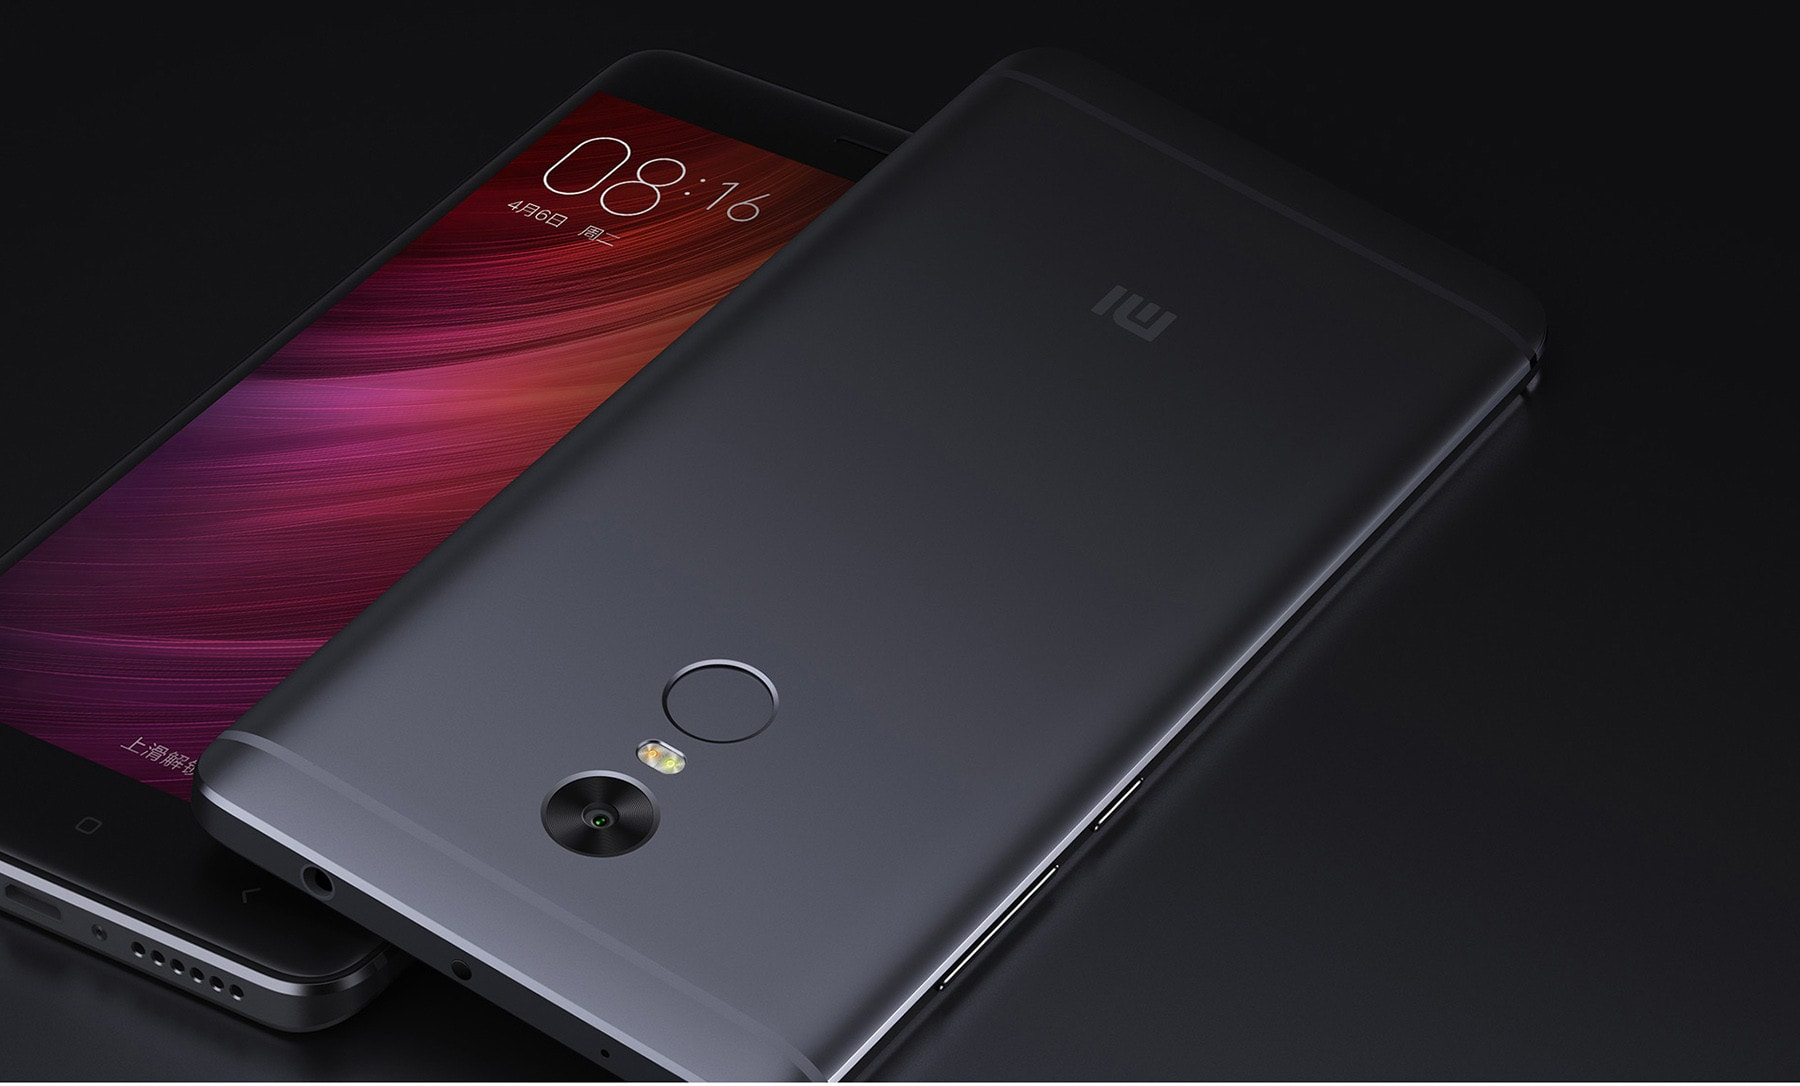 Xiaomi Set To Launch Redmi Note 4 And Redmi 4x In Mexico: Xiaomi Redmi Note 5 With Trending Display Expected To